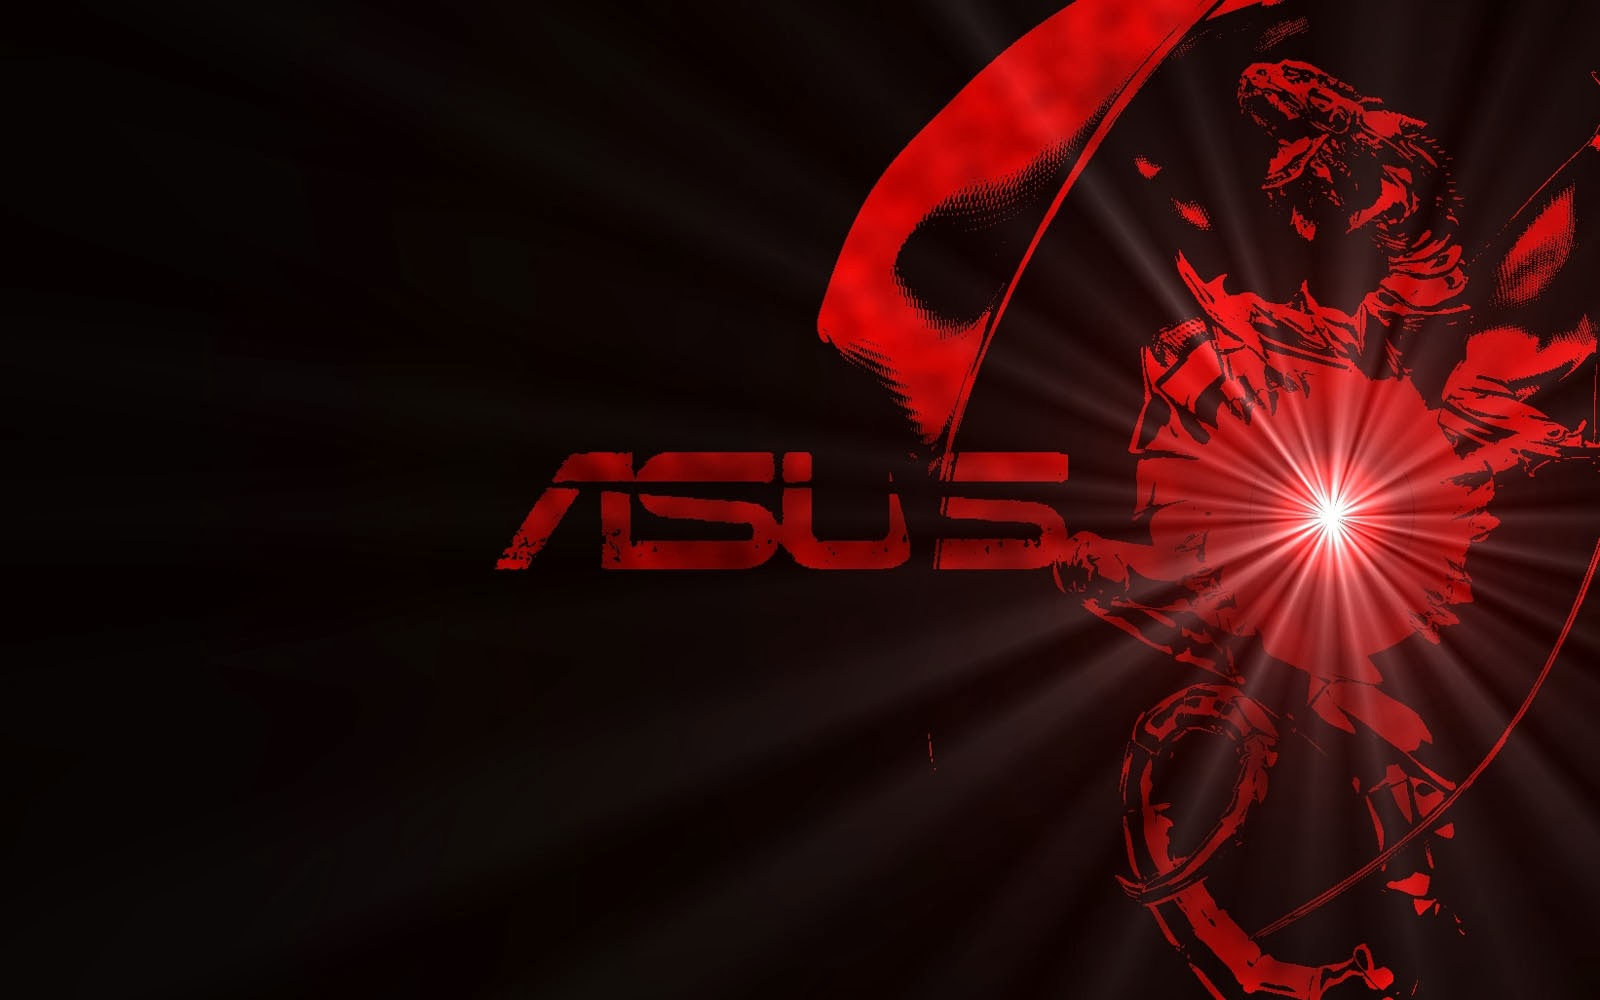 asus wallpapers asus wallpapers asus wallpapers asus wallpapers asus 1600x1000